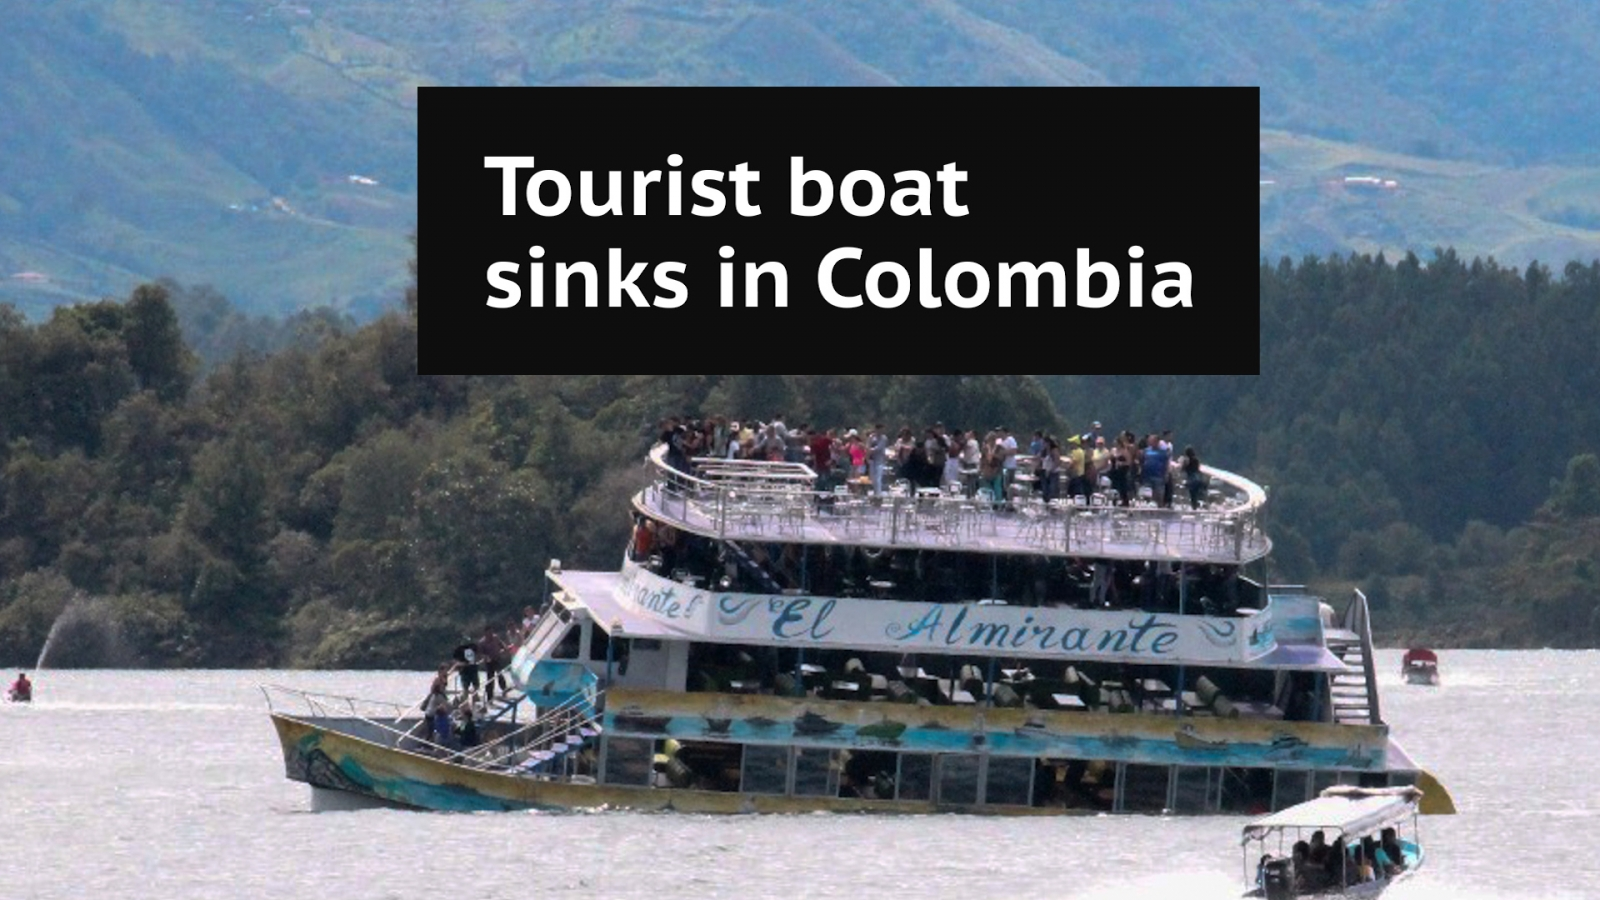 Dramatic timelapse video shows tourist boat sinking in Colombia reservoir